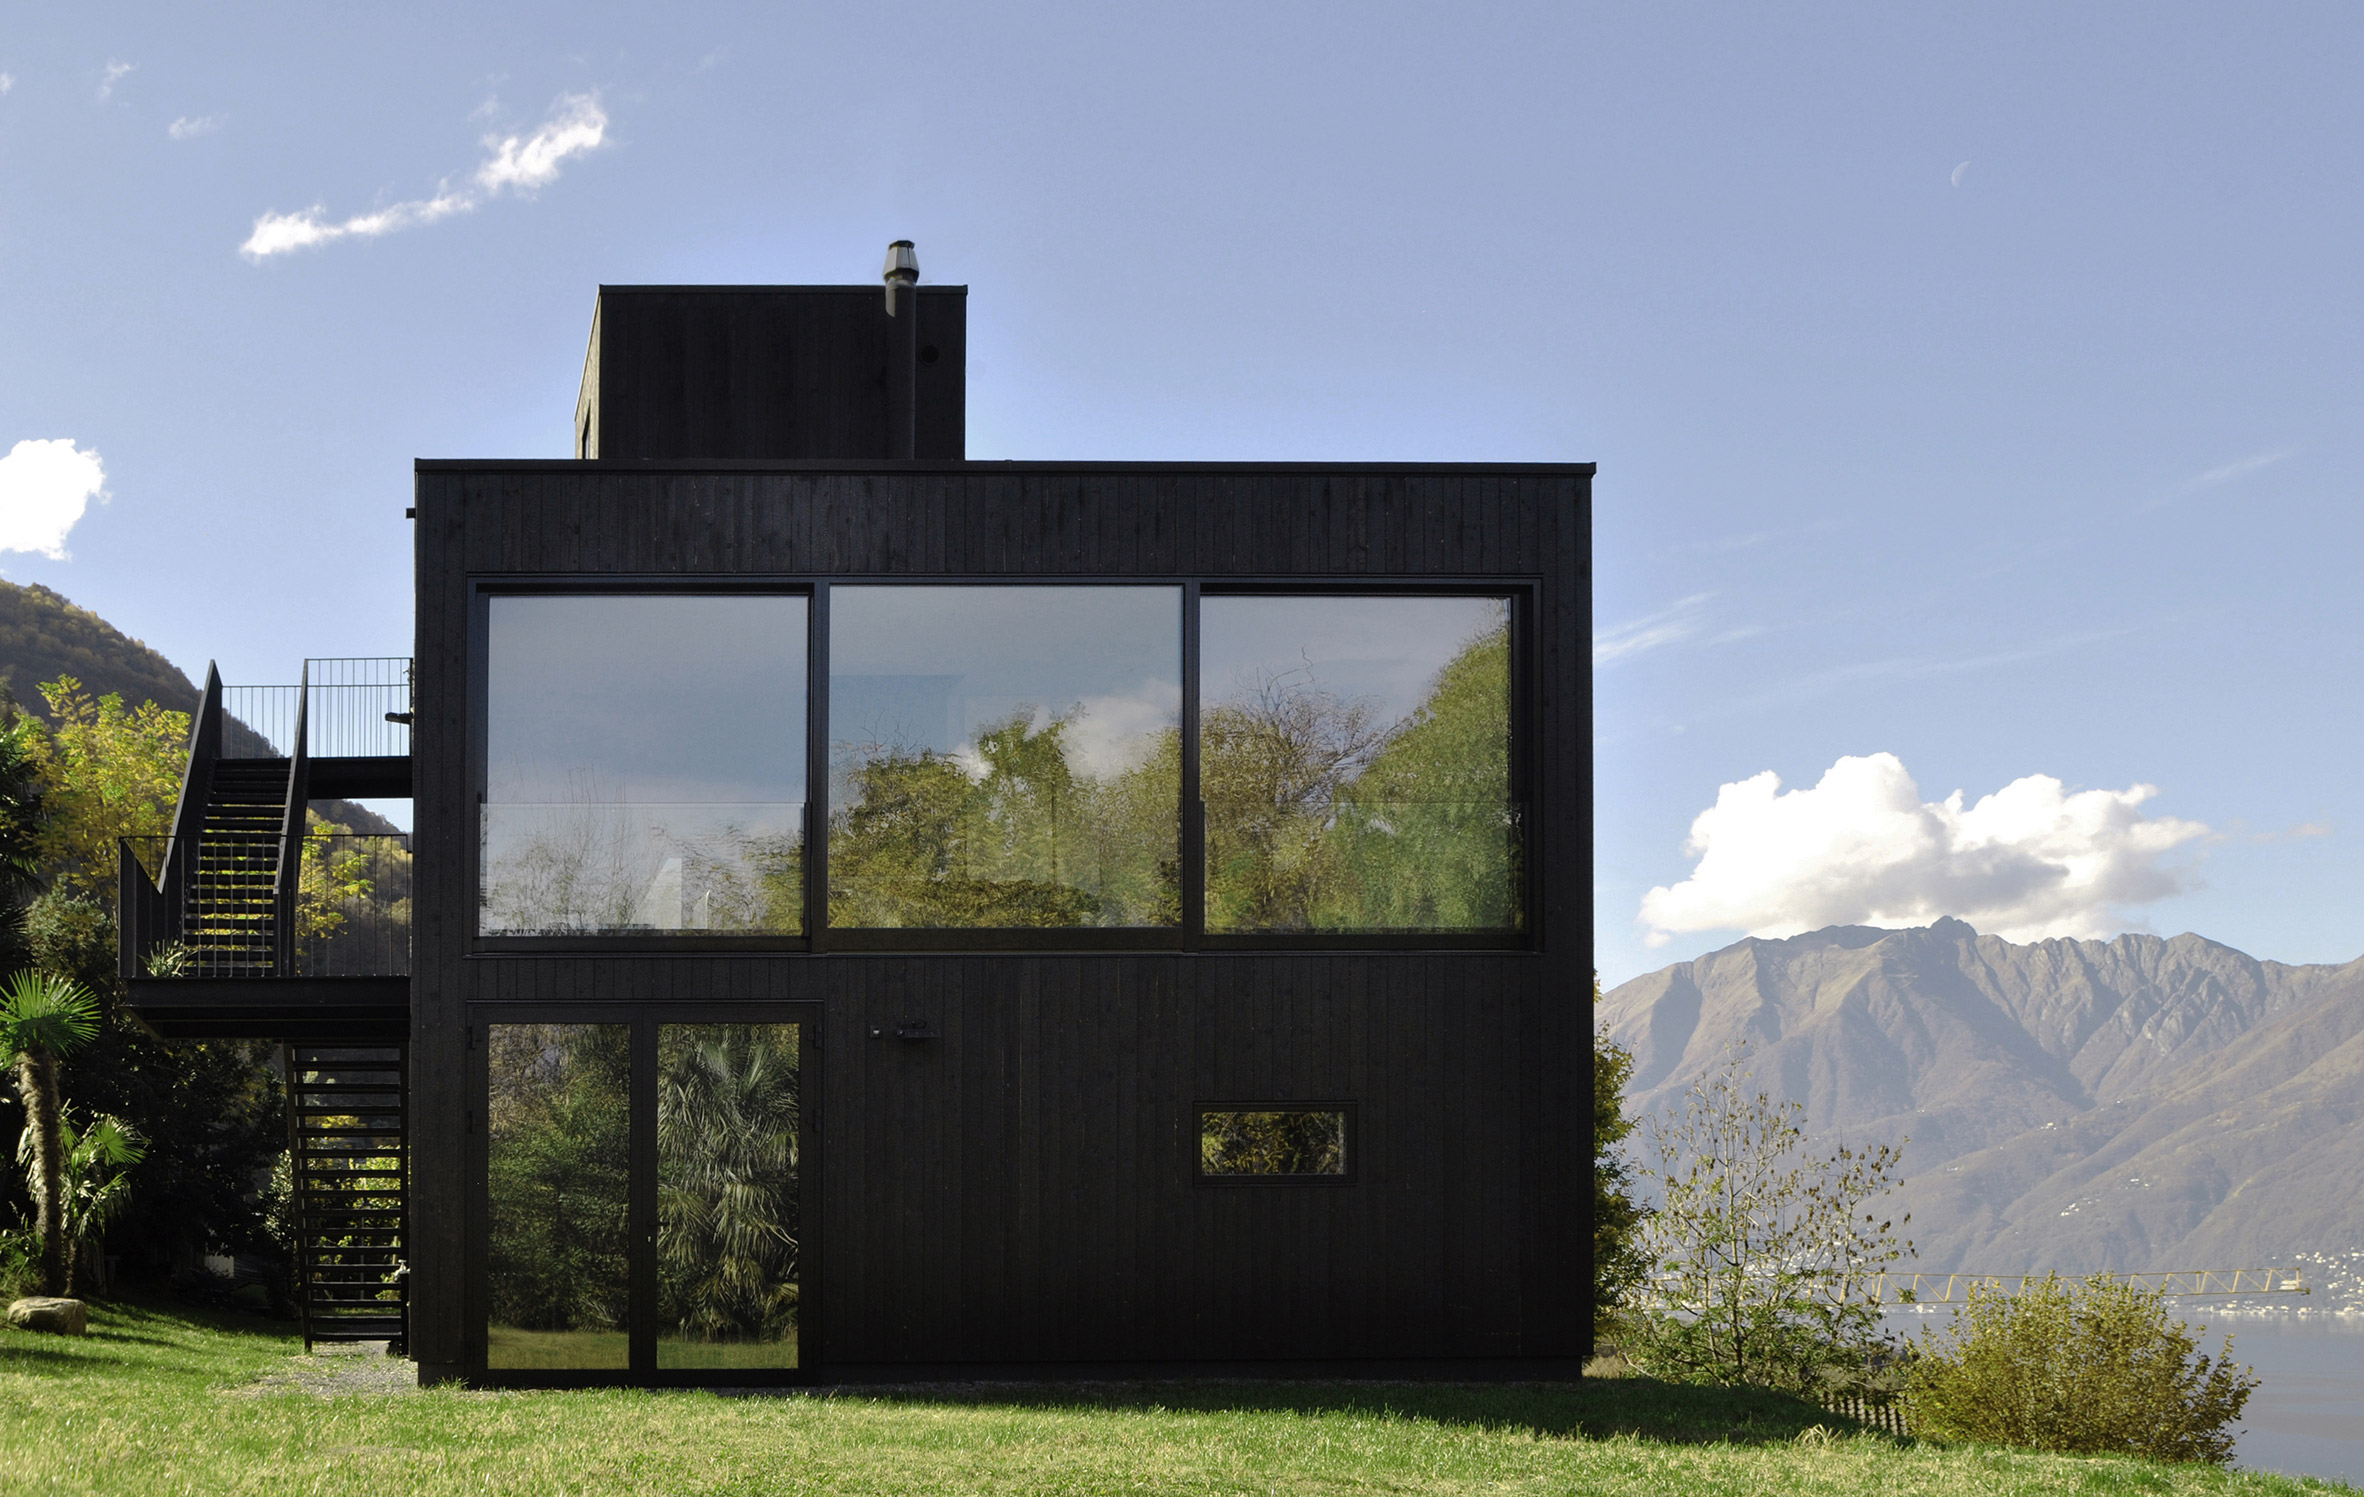 Prefabricated holiday home by Nicole Lachelle and Christian Niessen is clad in charred timber